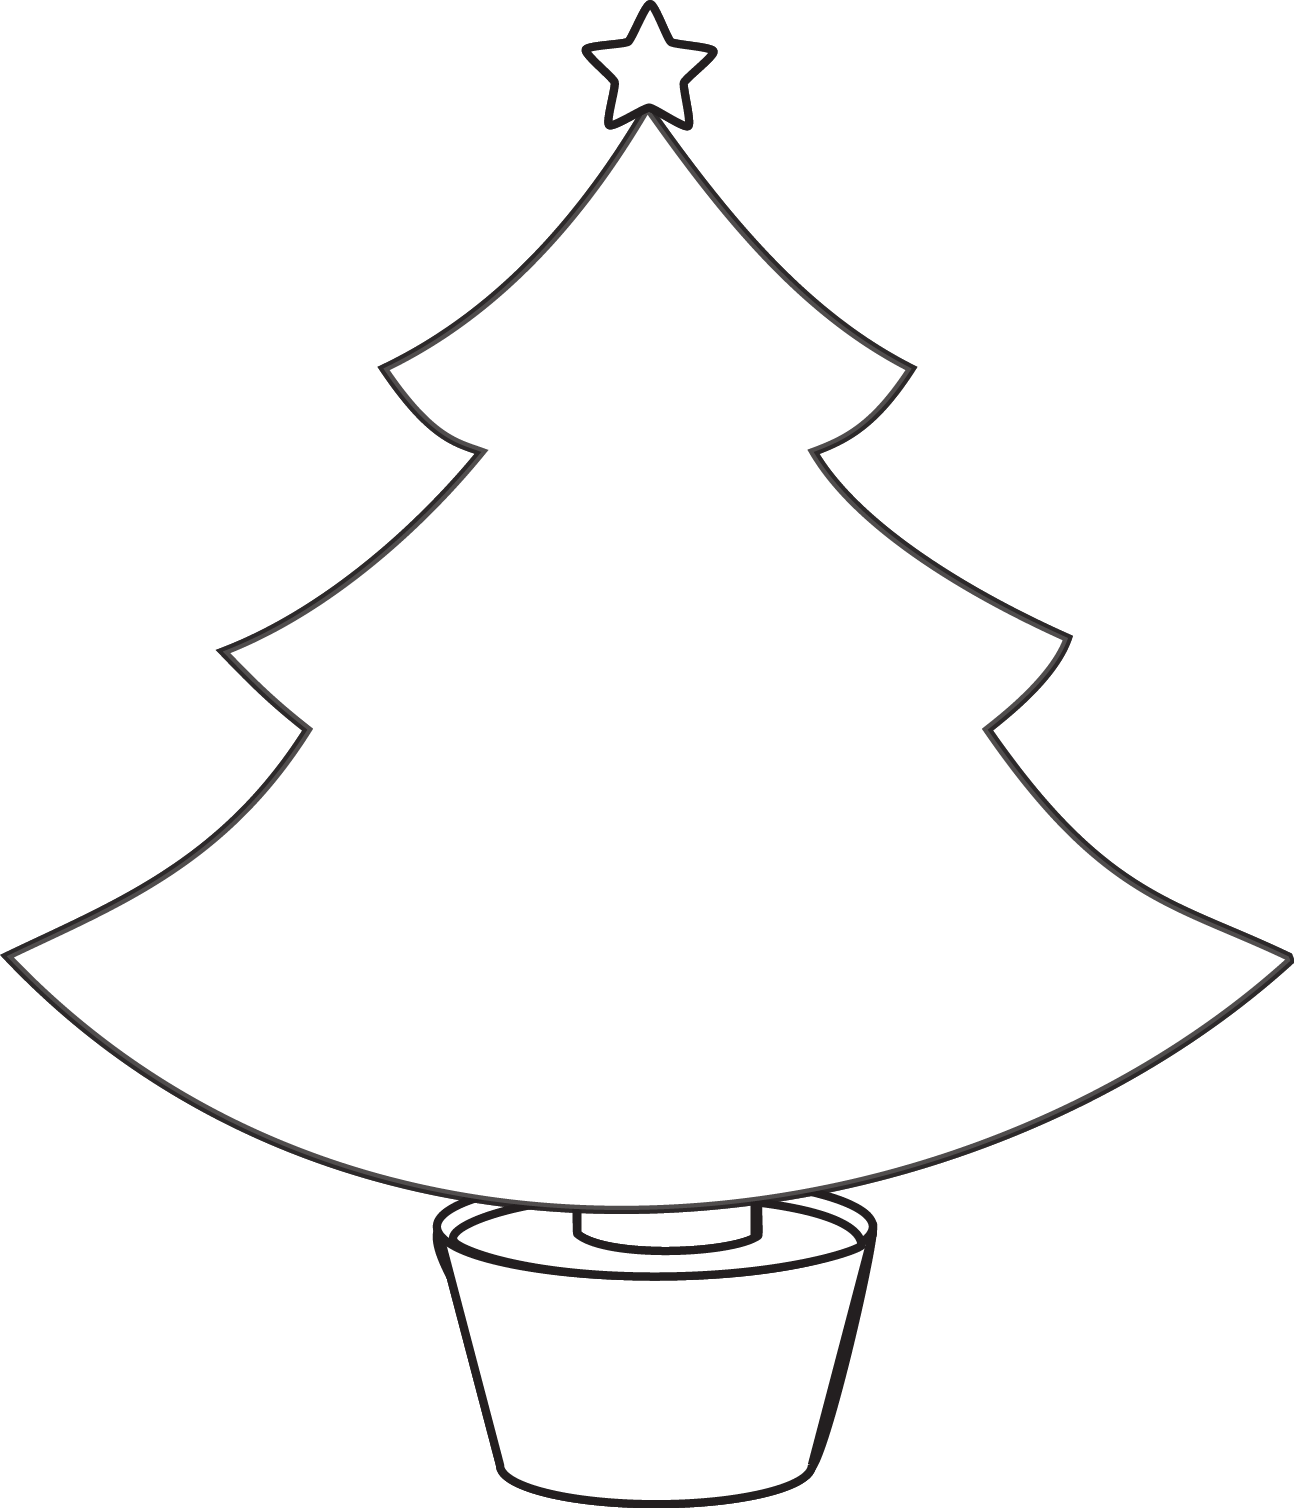 Tree Drawing For Kid At Getdrawings Com Free For Personal Use Tree